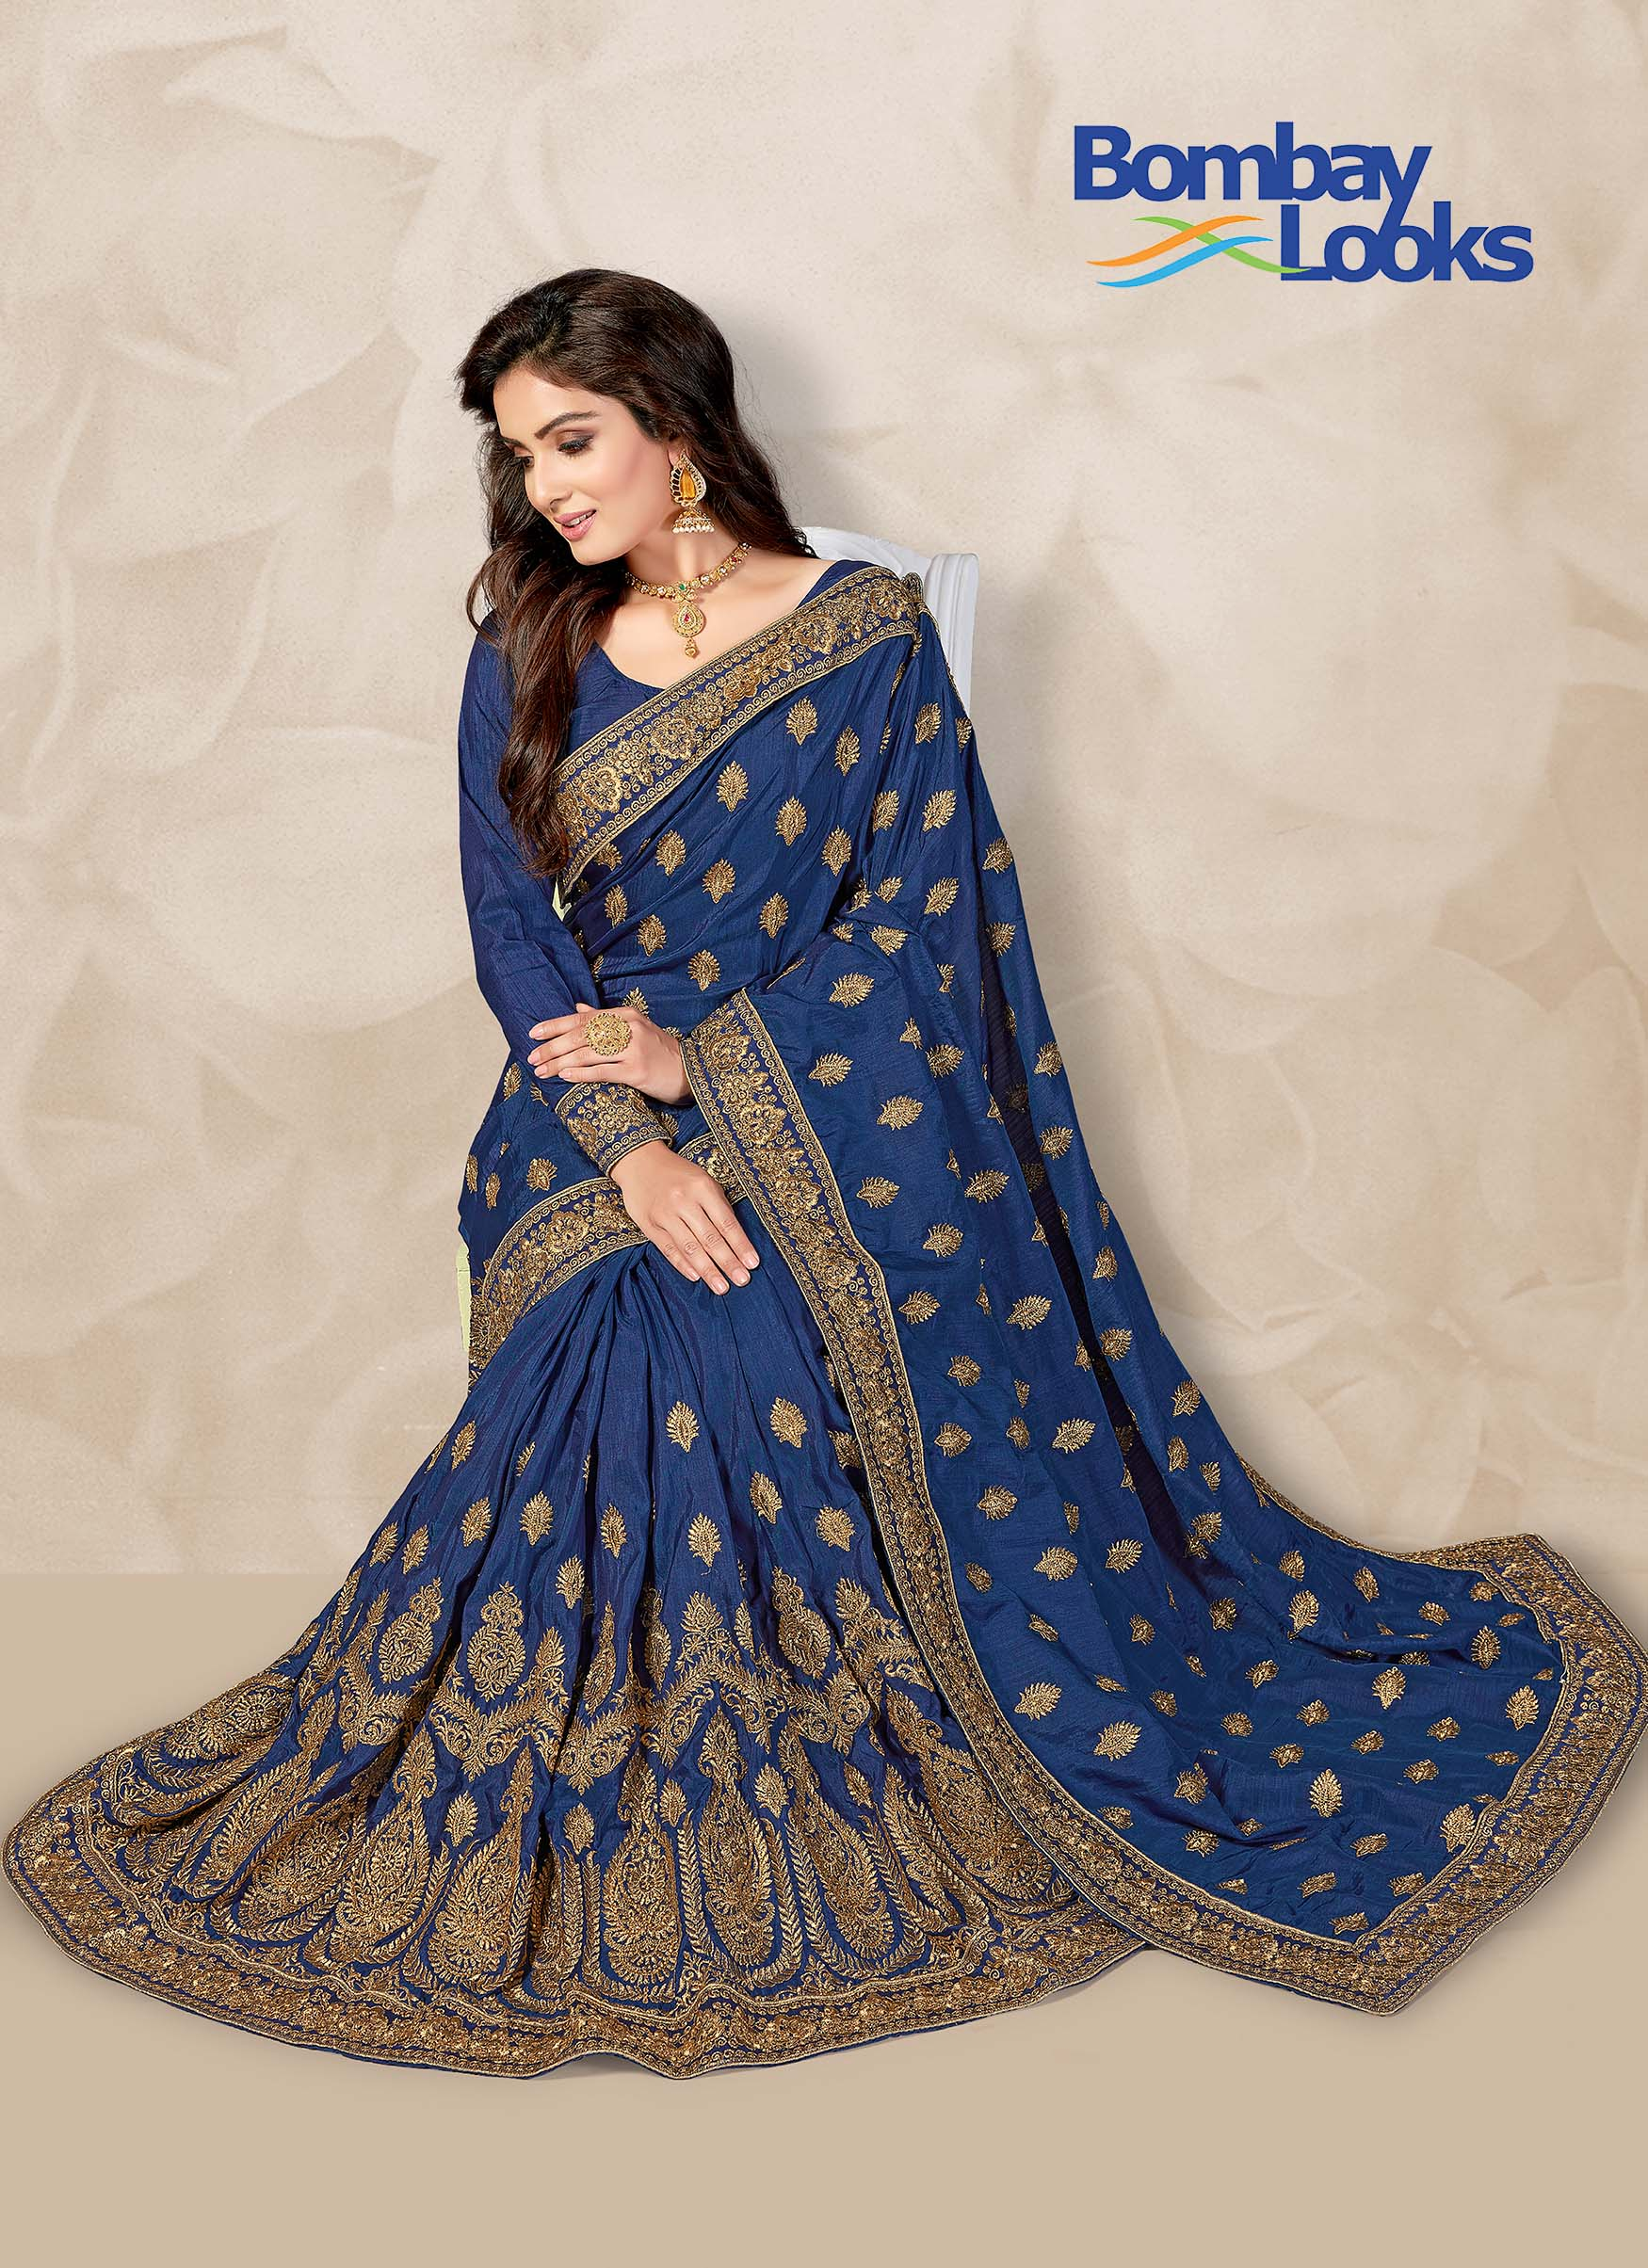 Royal blue silk saree with gorgeous embellishments in gold